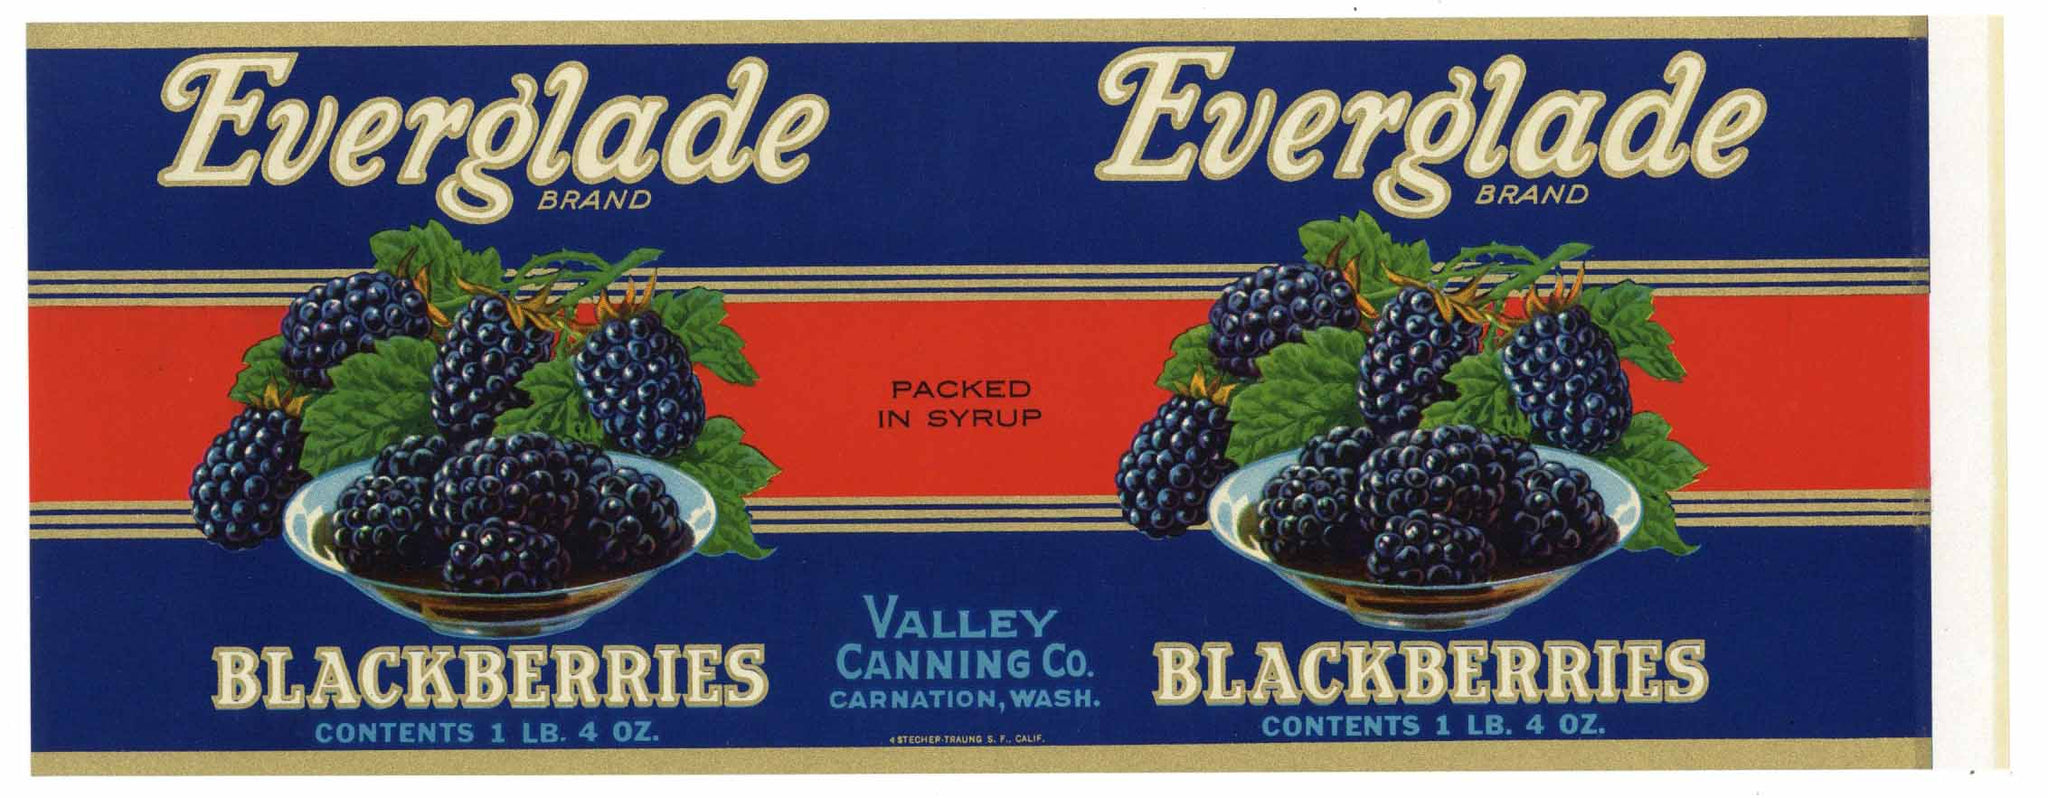 Everglade Brand Vintage Carnation Washington Berry Can Label